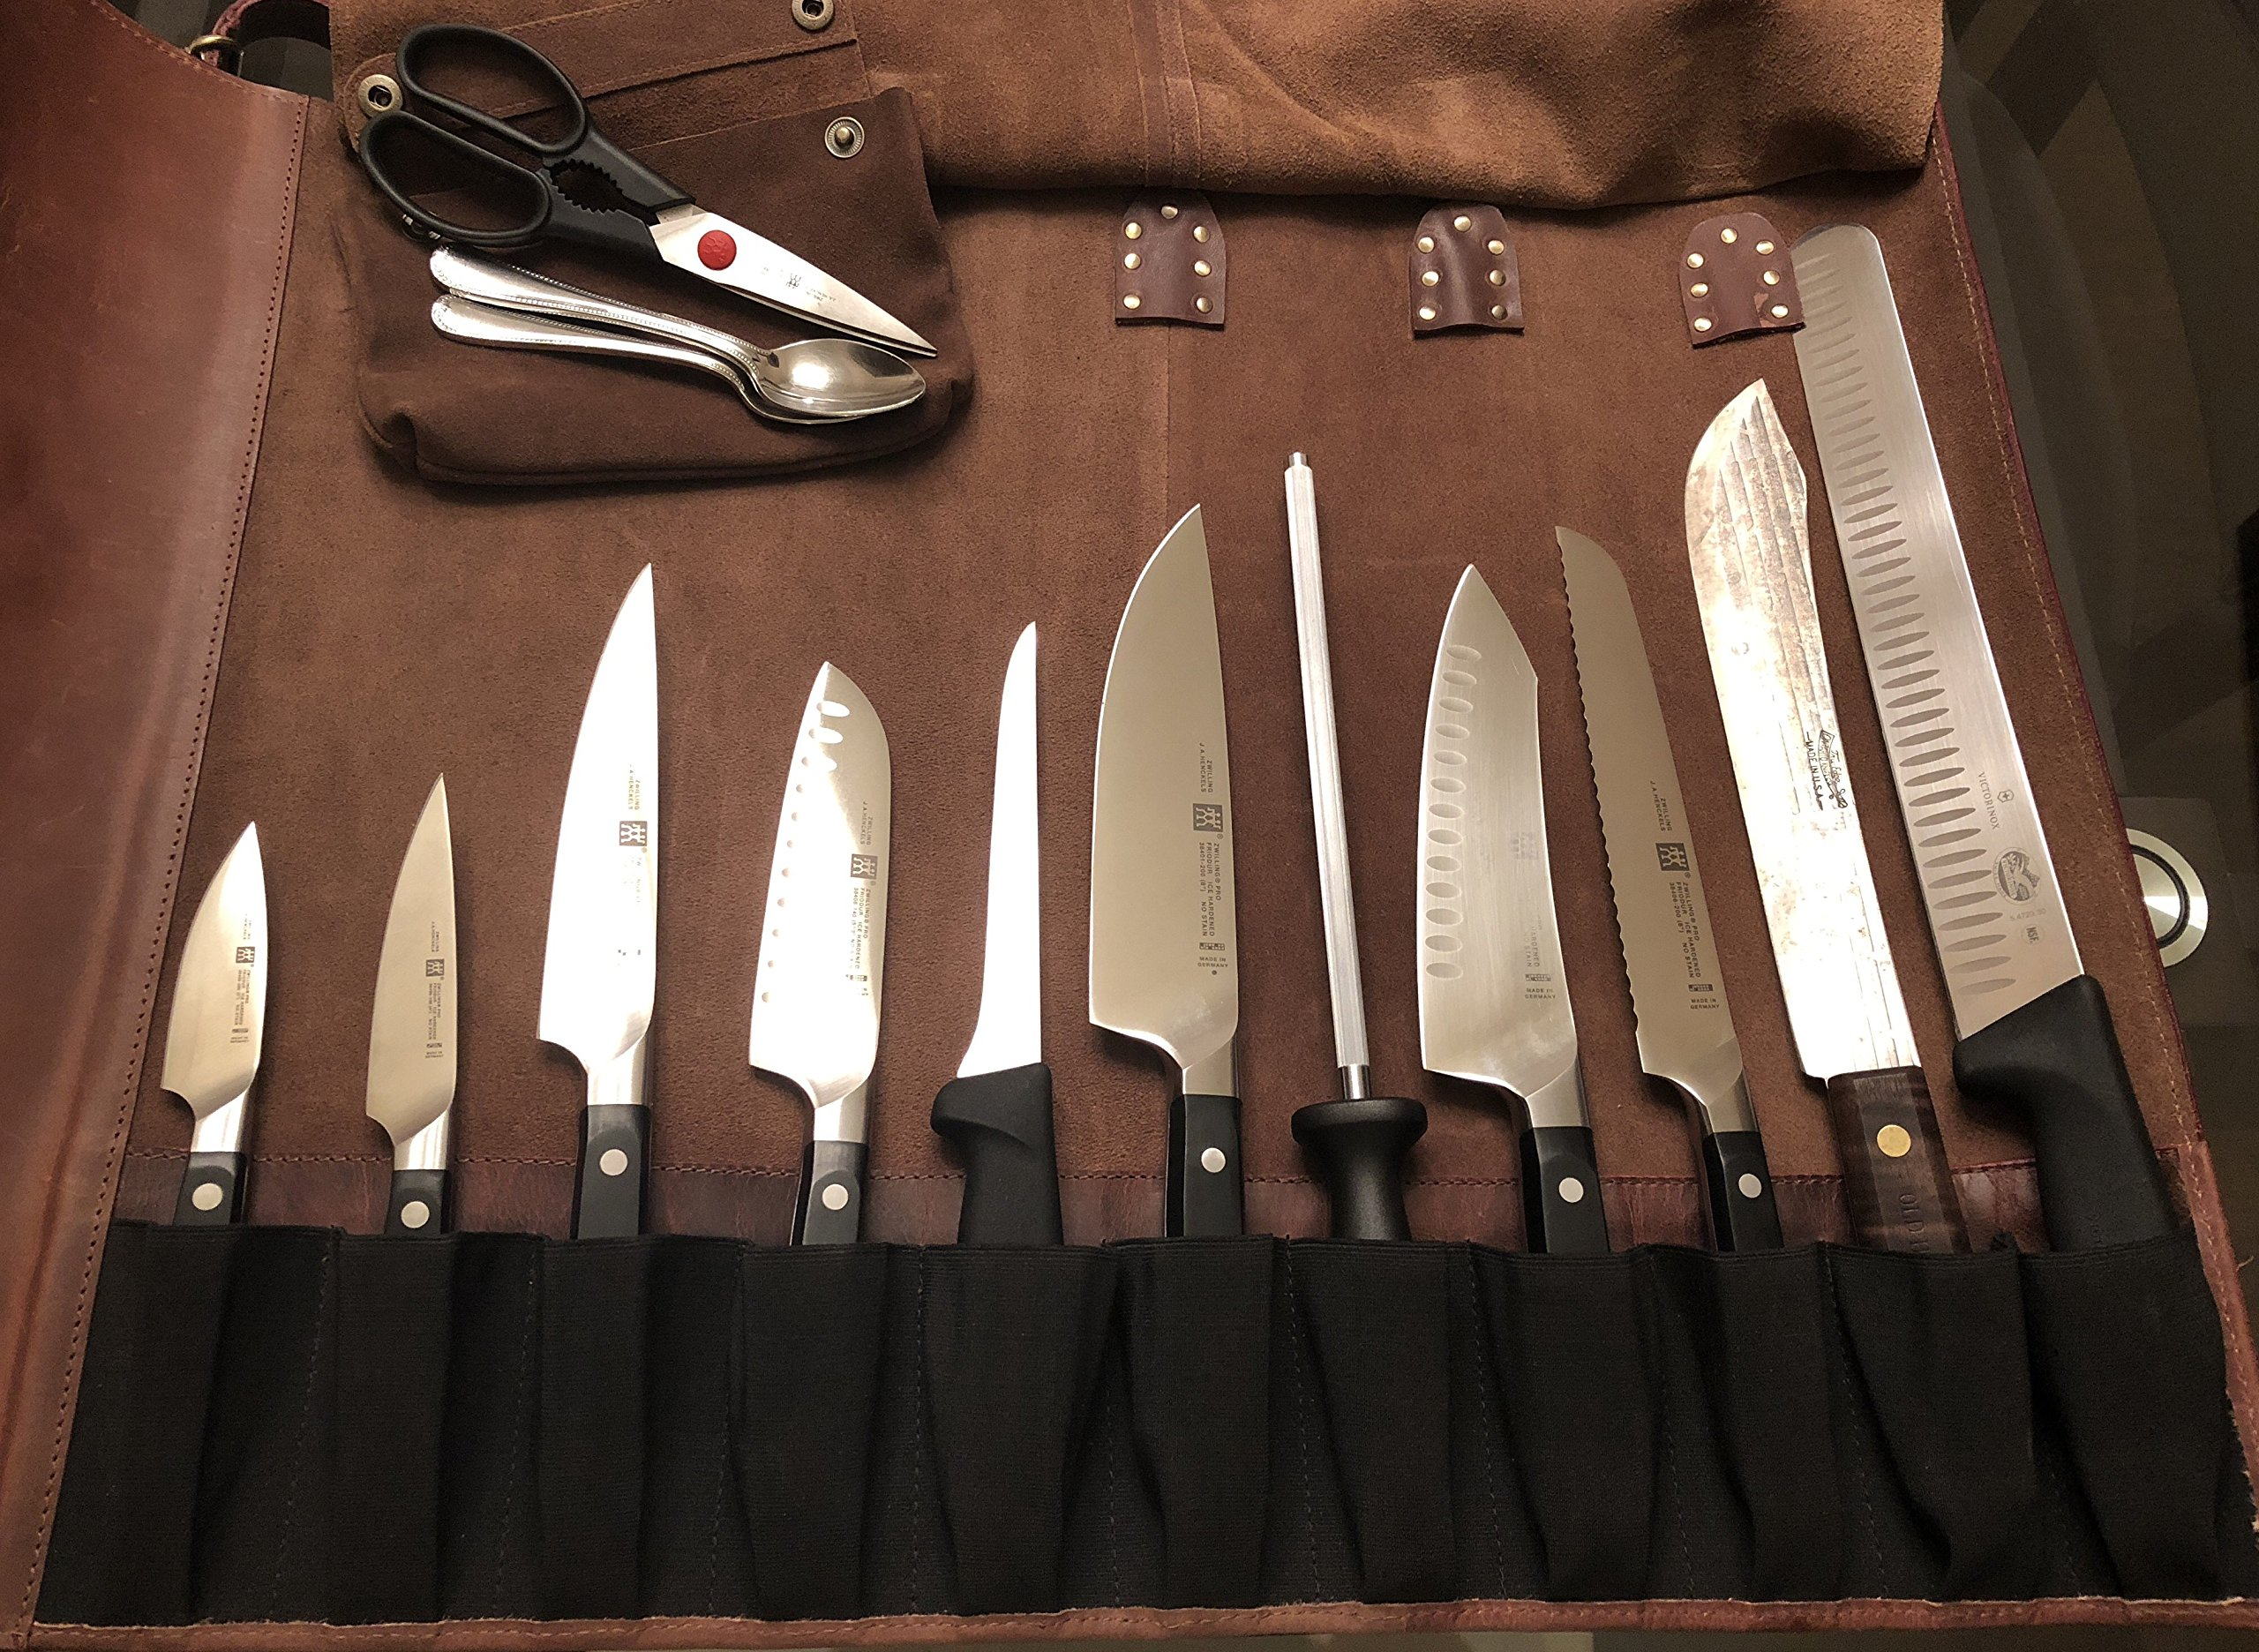 Genuine Leather Chef Knife Roll - All Purpose Chef Roll Up Kit - Portable Kitchen Knives Protector by Rustic Town (Image #4)